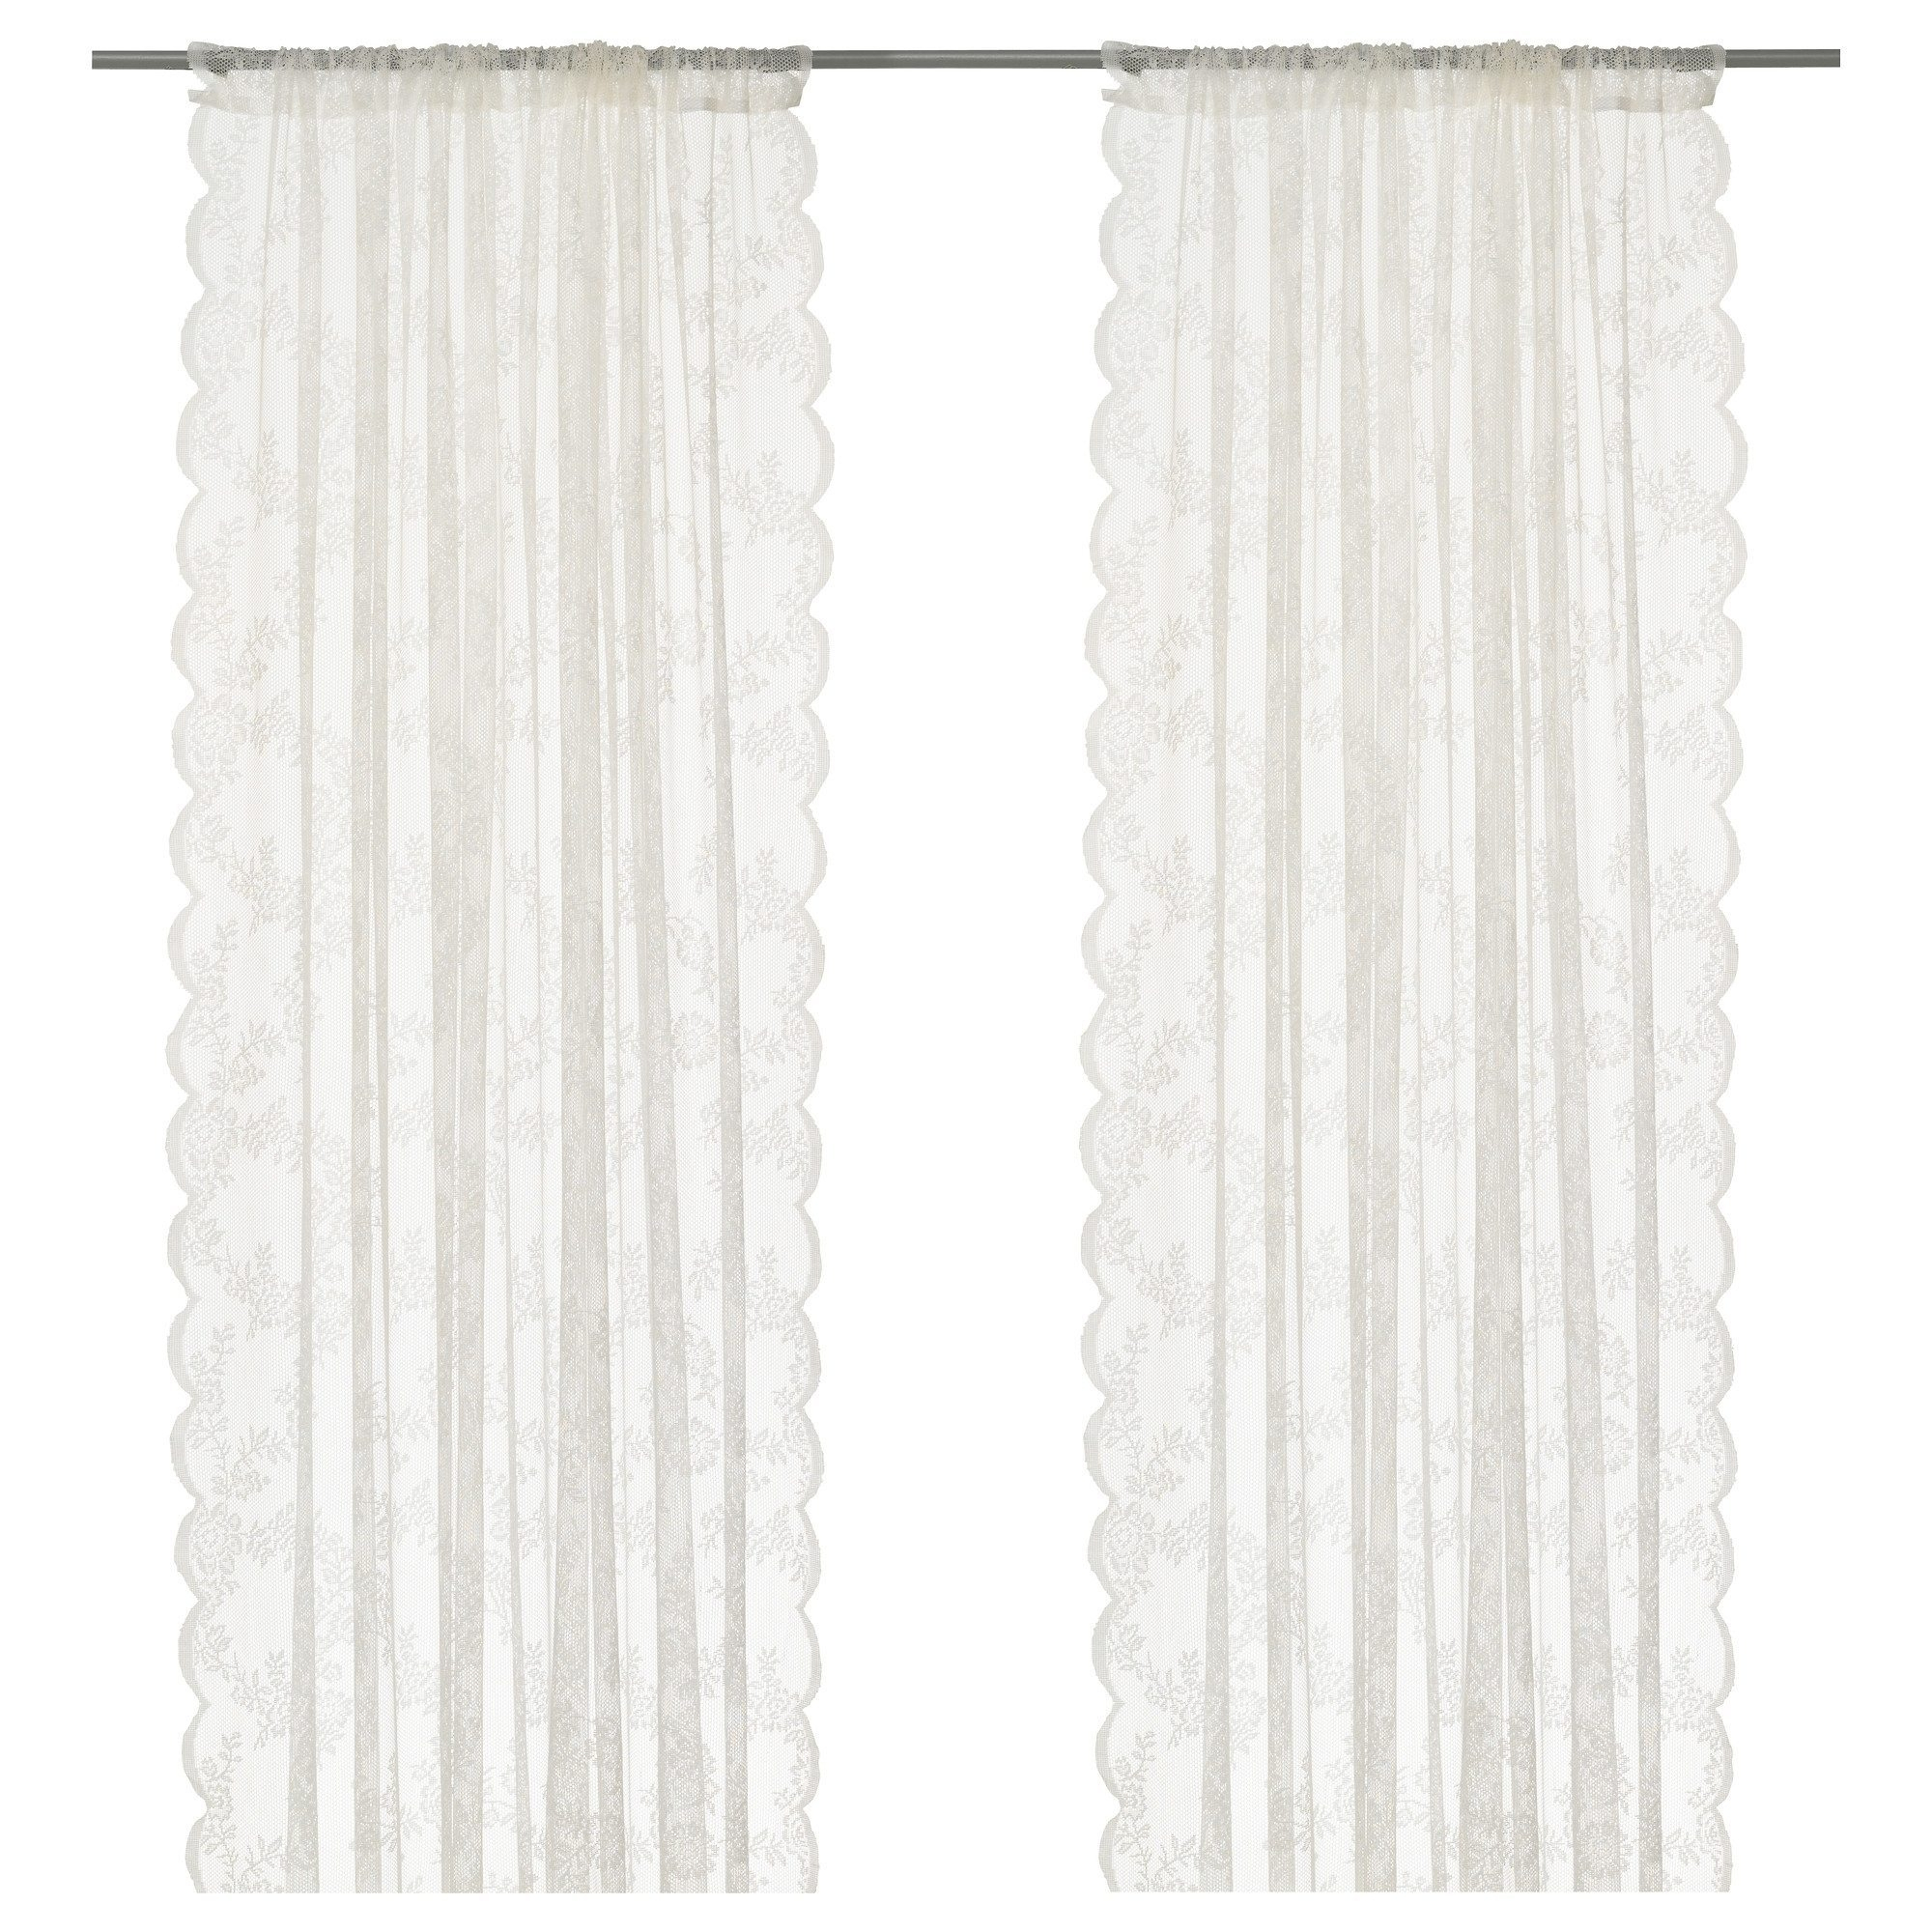 96 Curved Shower Curtain Rod Shower Curtain within measurements 2000 X 2000